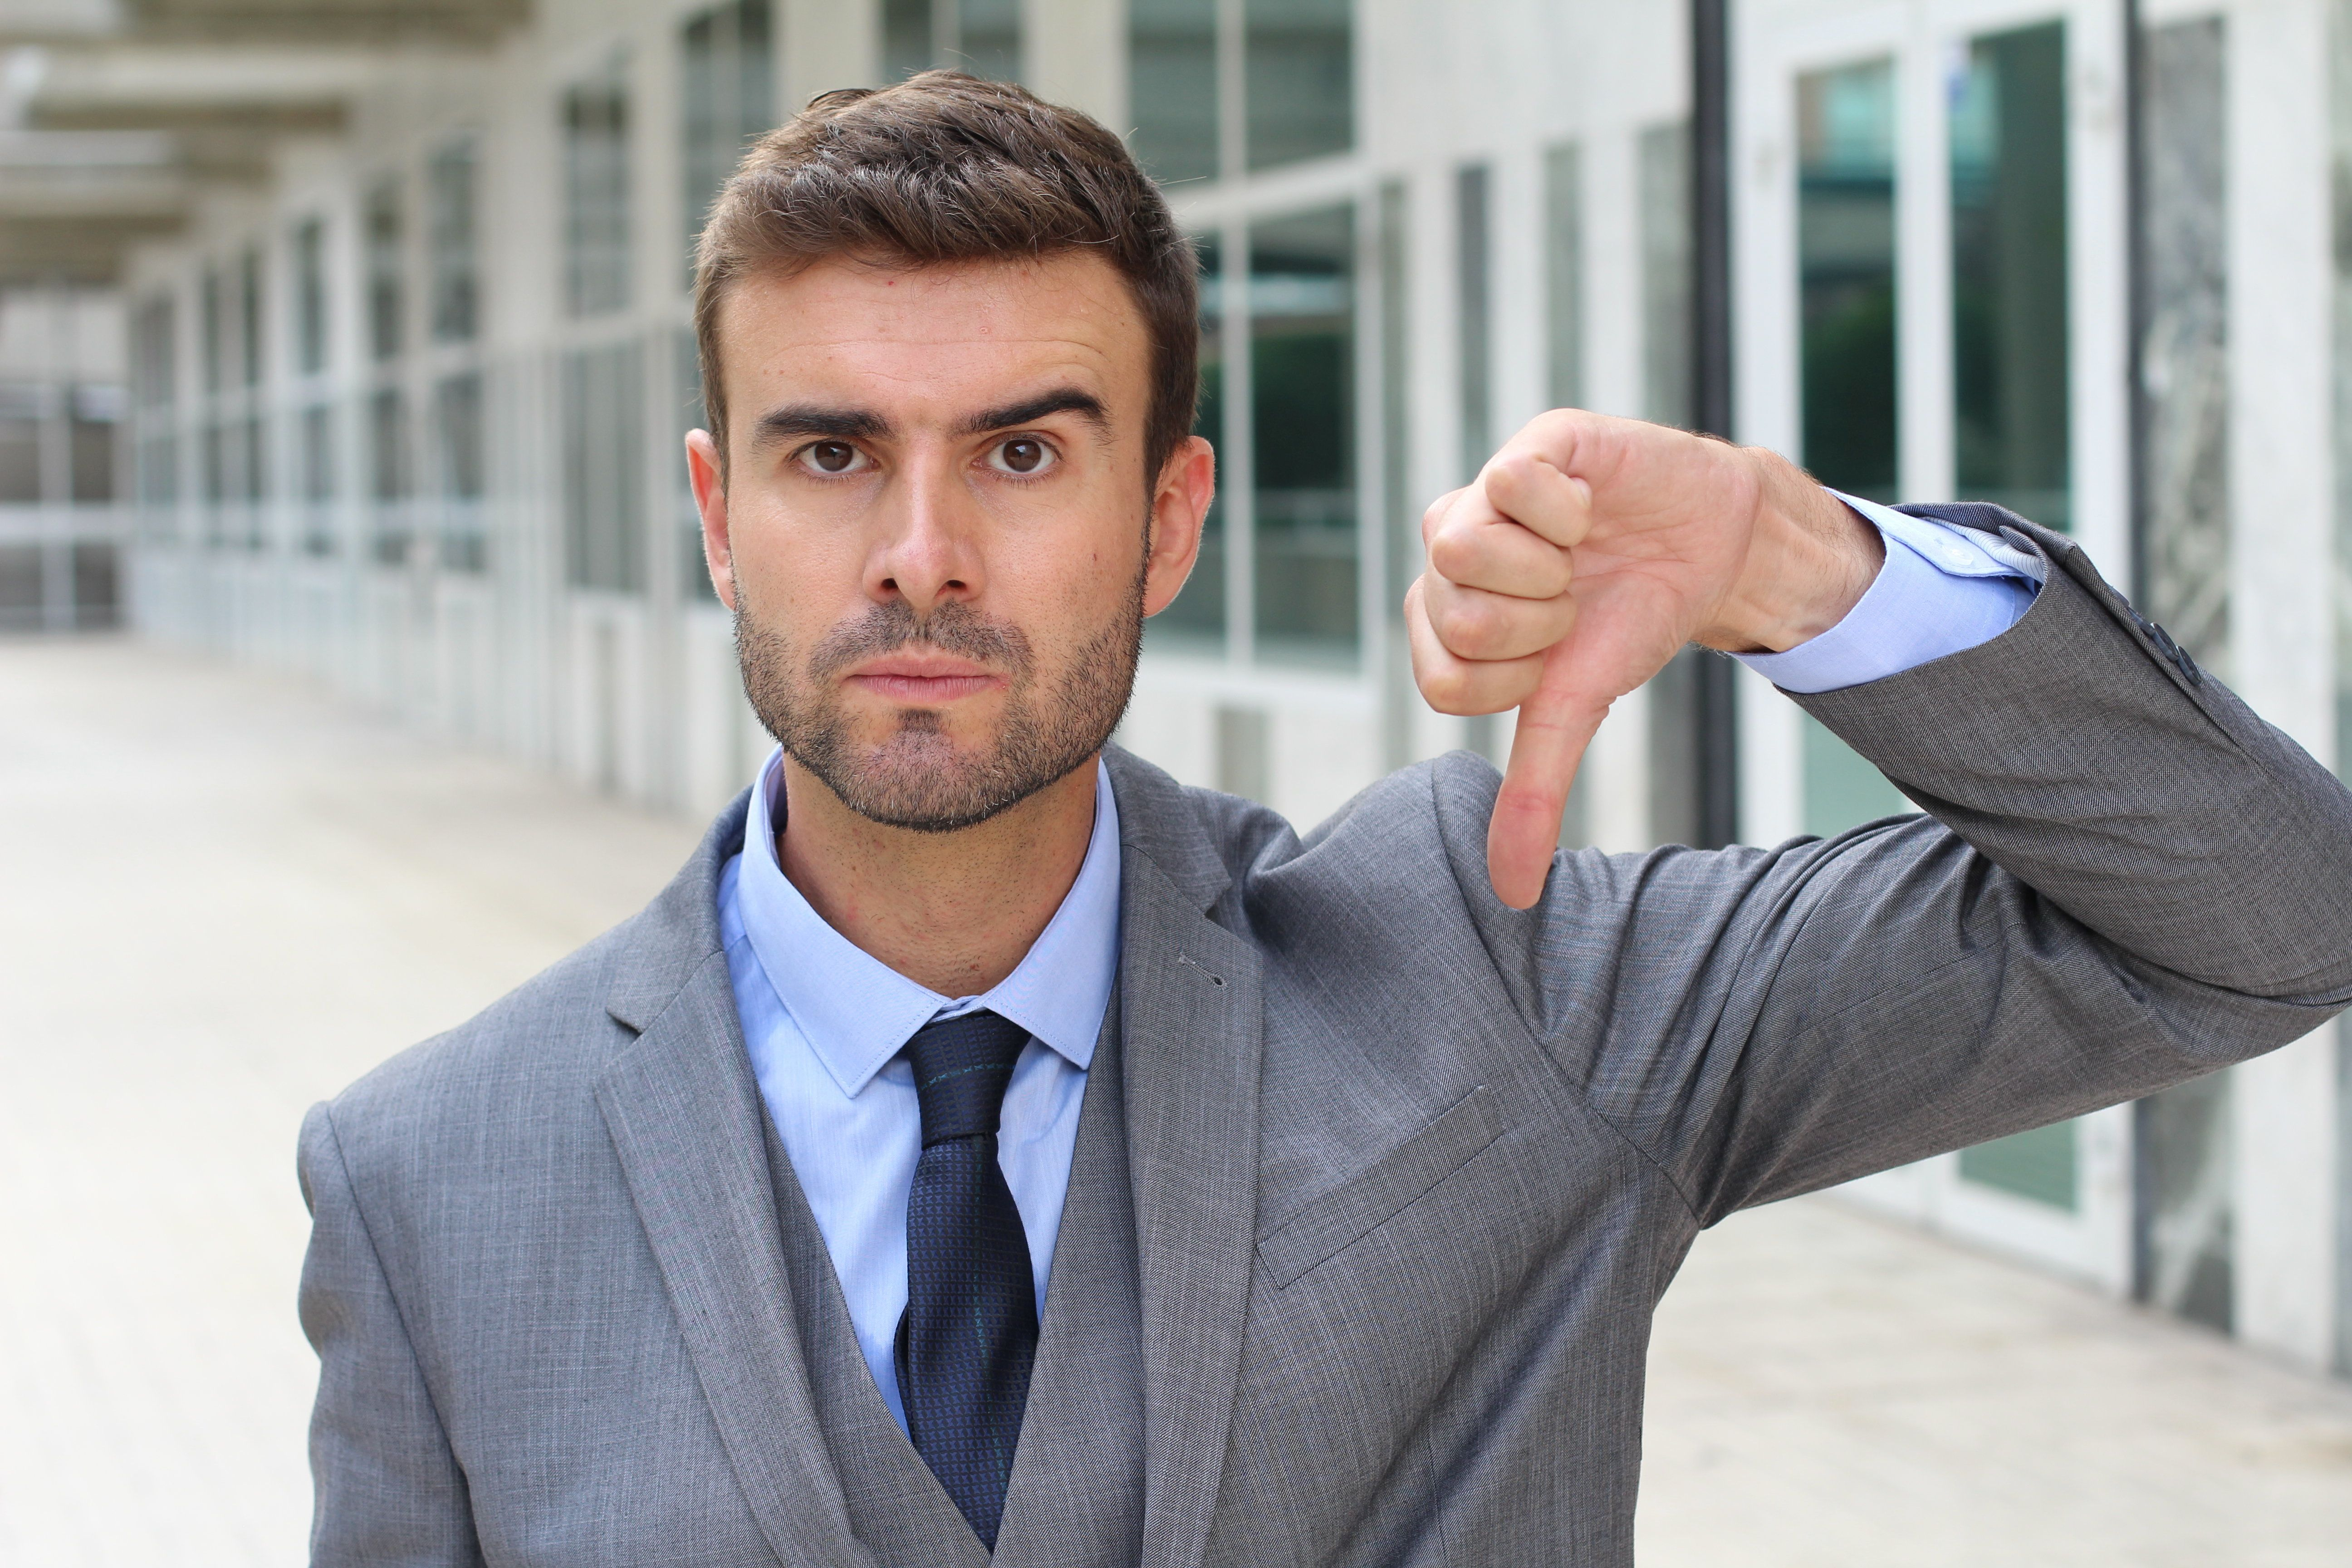 The Worst Advice Realtors And Mortgage Brokers Have Ever